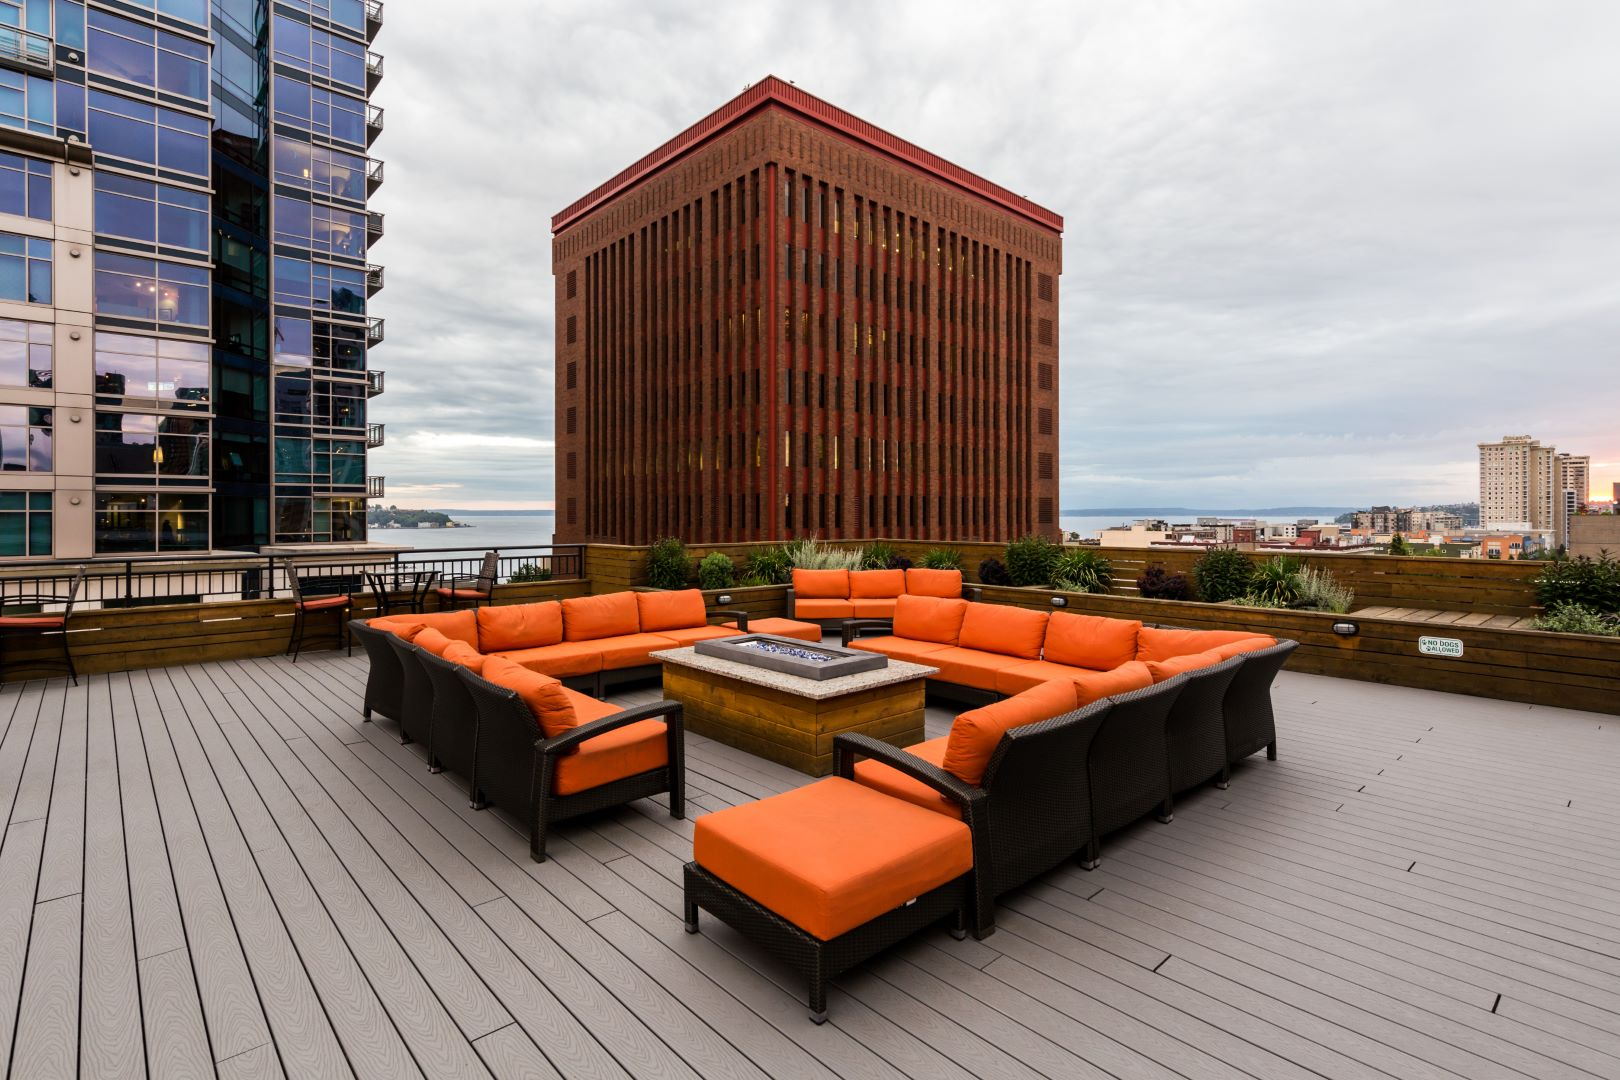 Rooftop lounge at Marq 211 Apartments, Belltown, Seattle